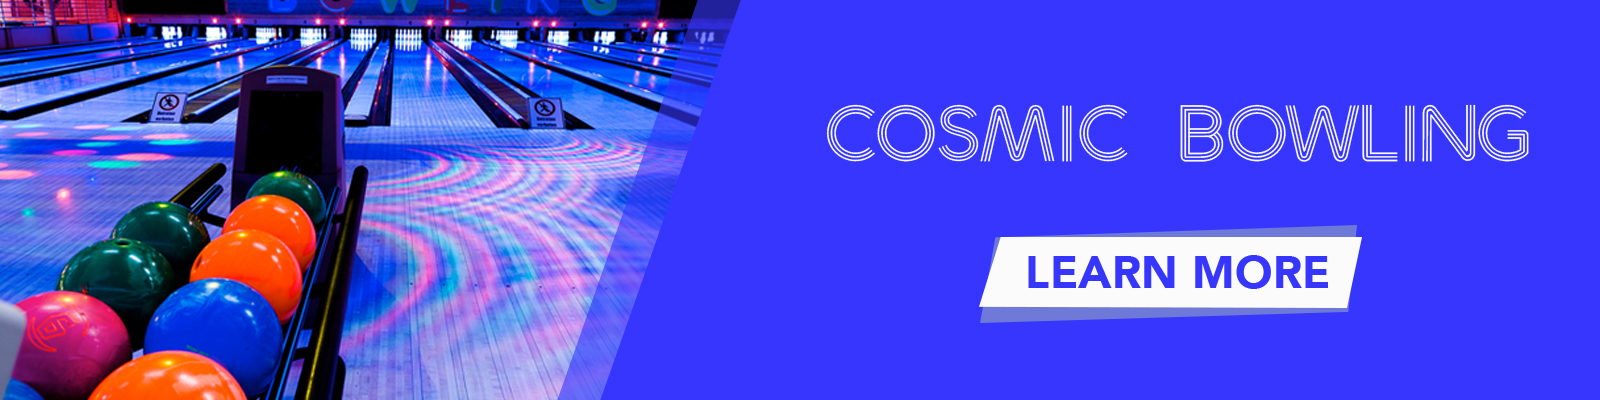 Click to learn more about cosmic bowling